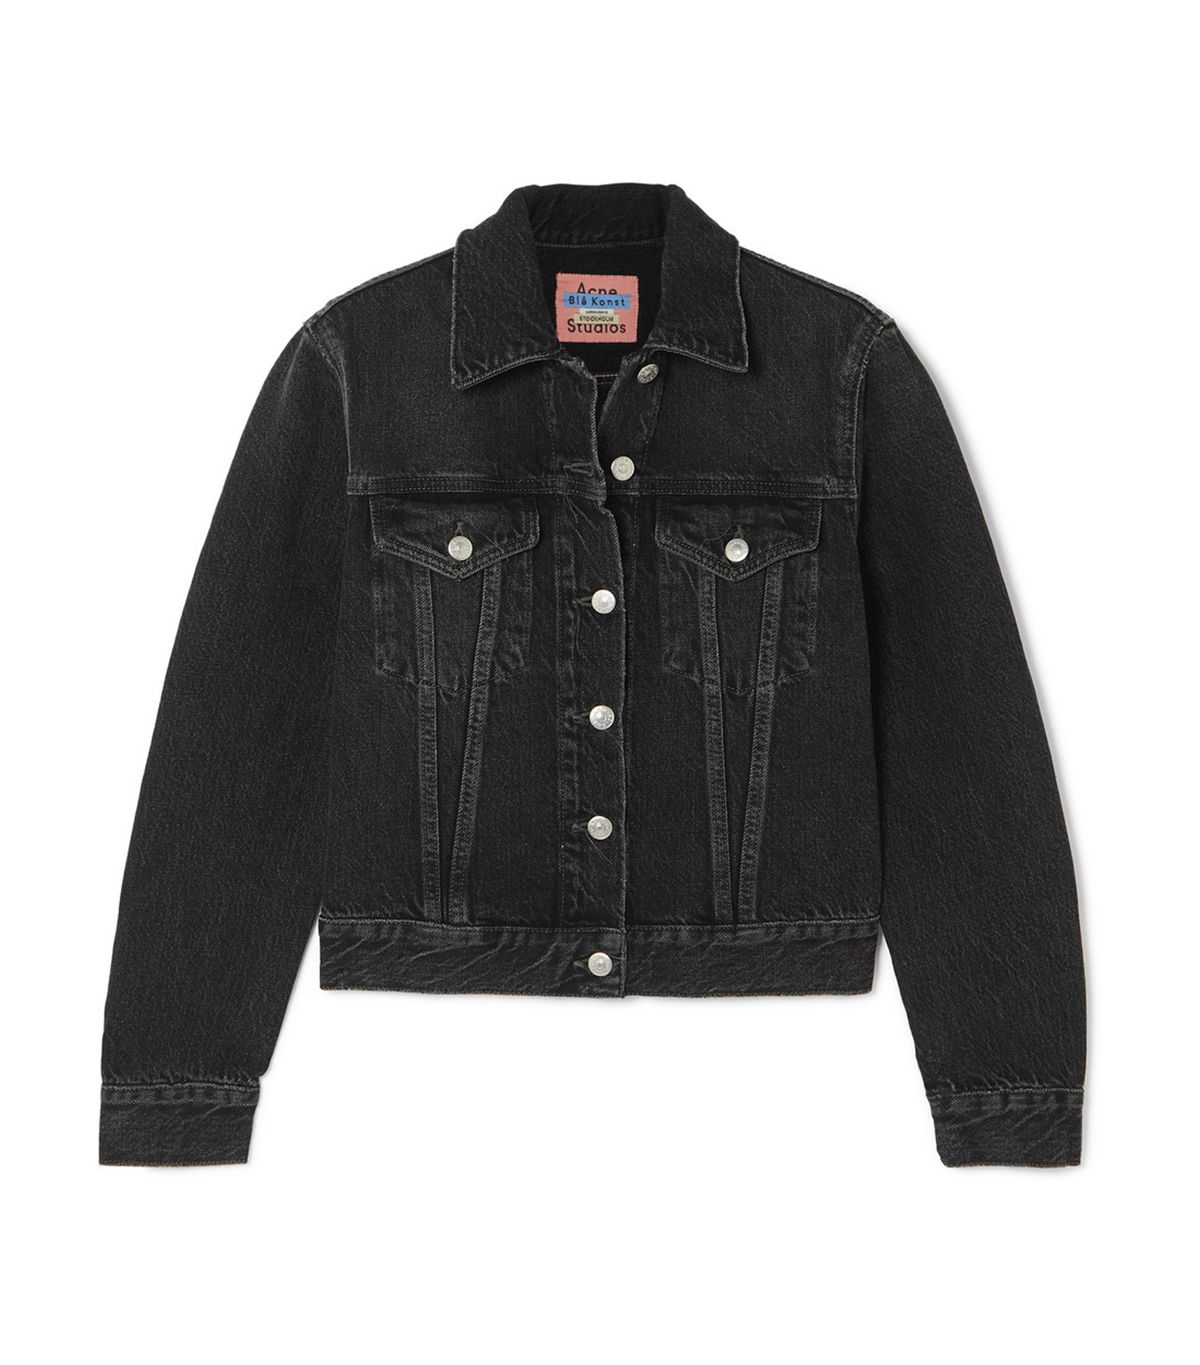 15 Ways to Wear a Black Denim Jacket This Fall – Fab Dallas